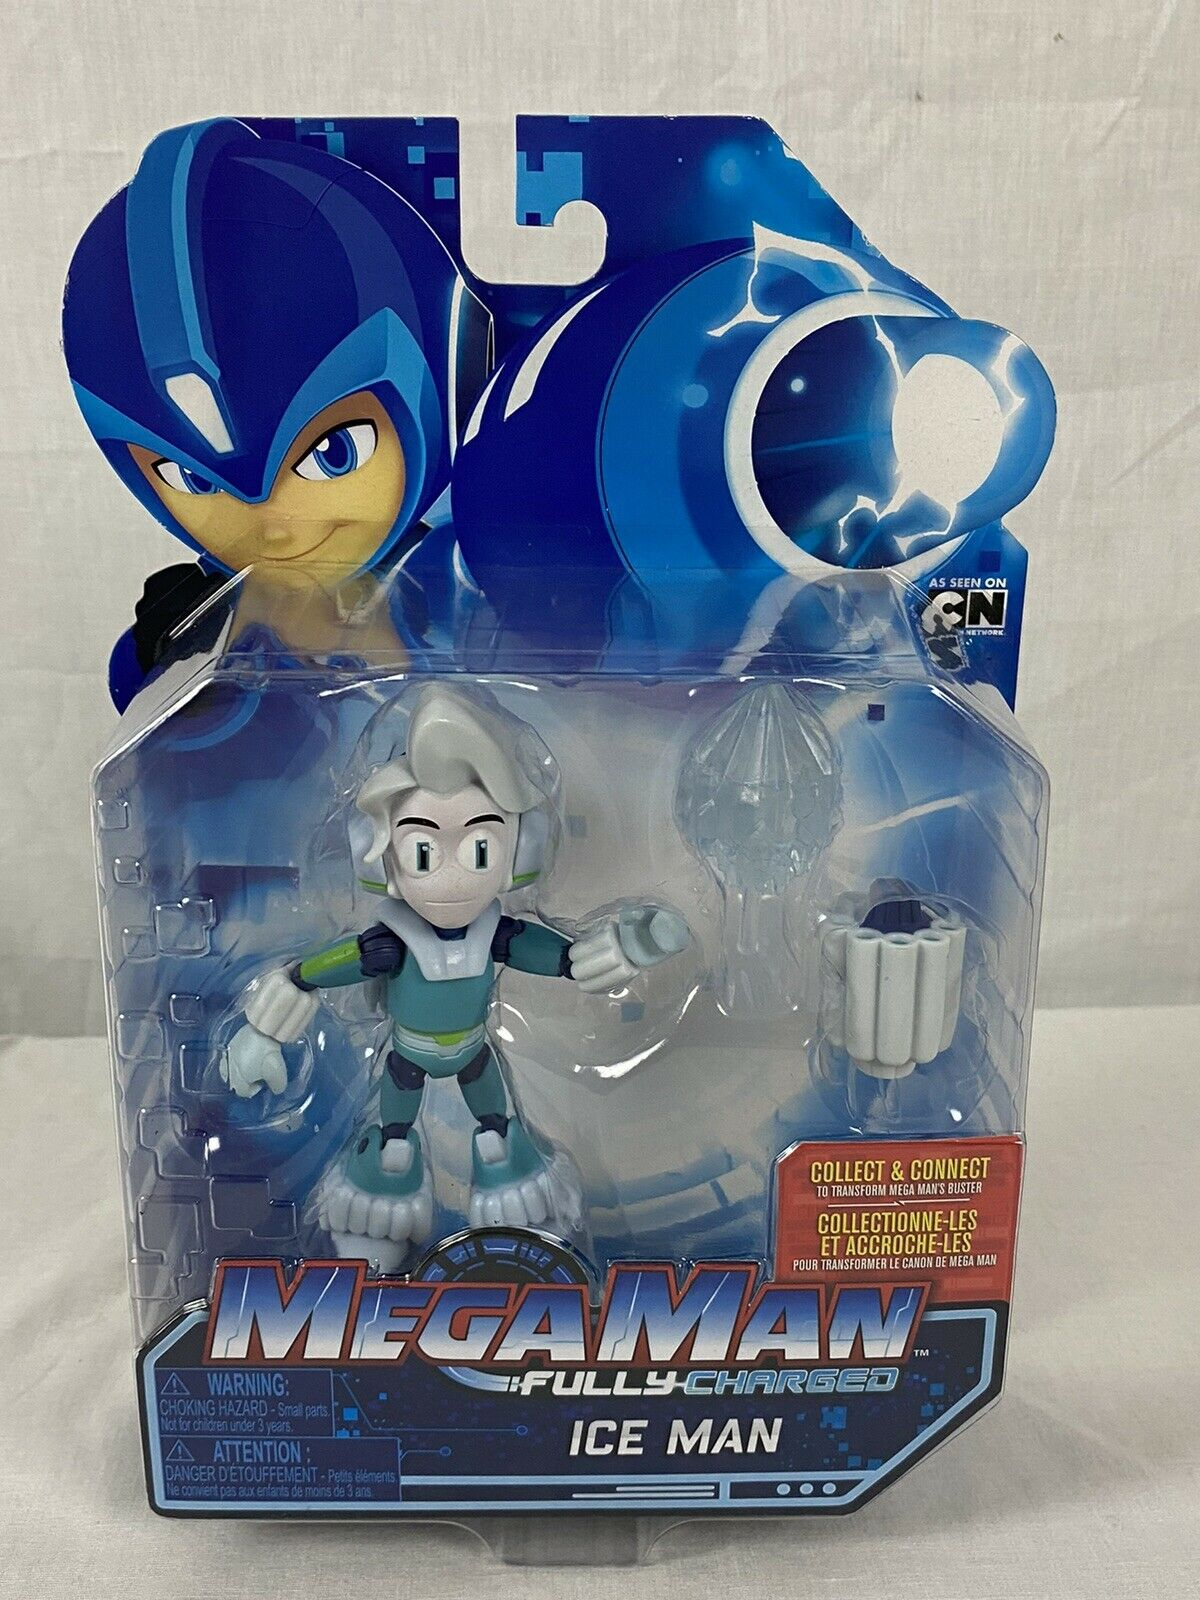 Mega Man Fully Charged Ice Man Action Figure 2019 Jakks Pacific Cartoon Network For Sale Online